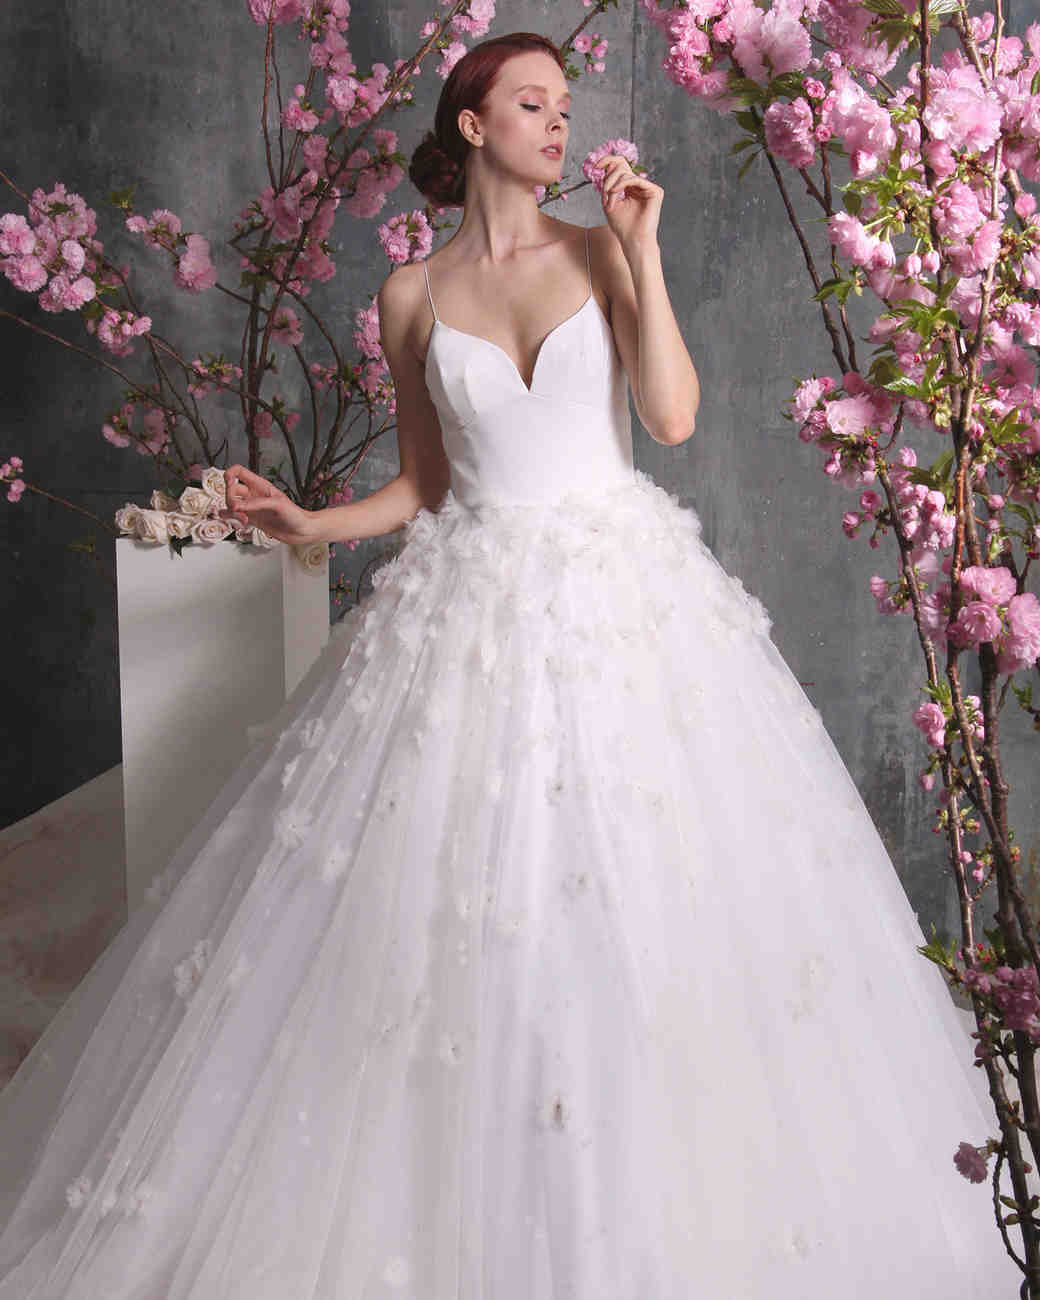 Christian siriano spring 2018 wedding dress collection for Spring wedding dresses 2018